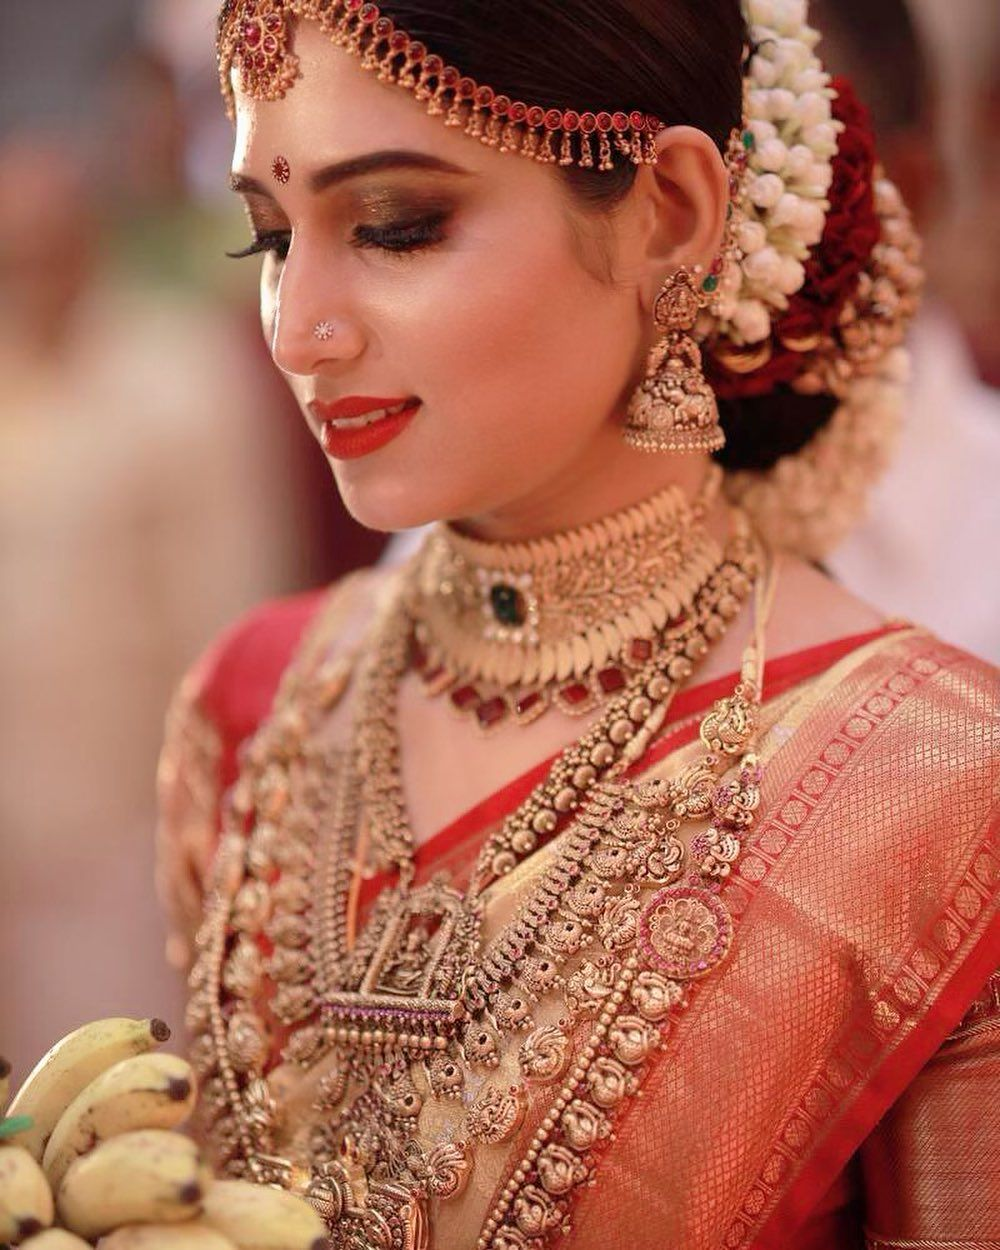 Pin By Poojajy On Kerala Wedding Photography In 2020